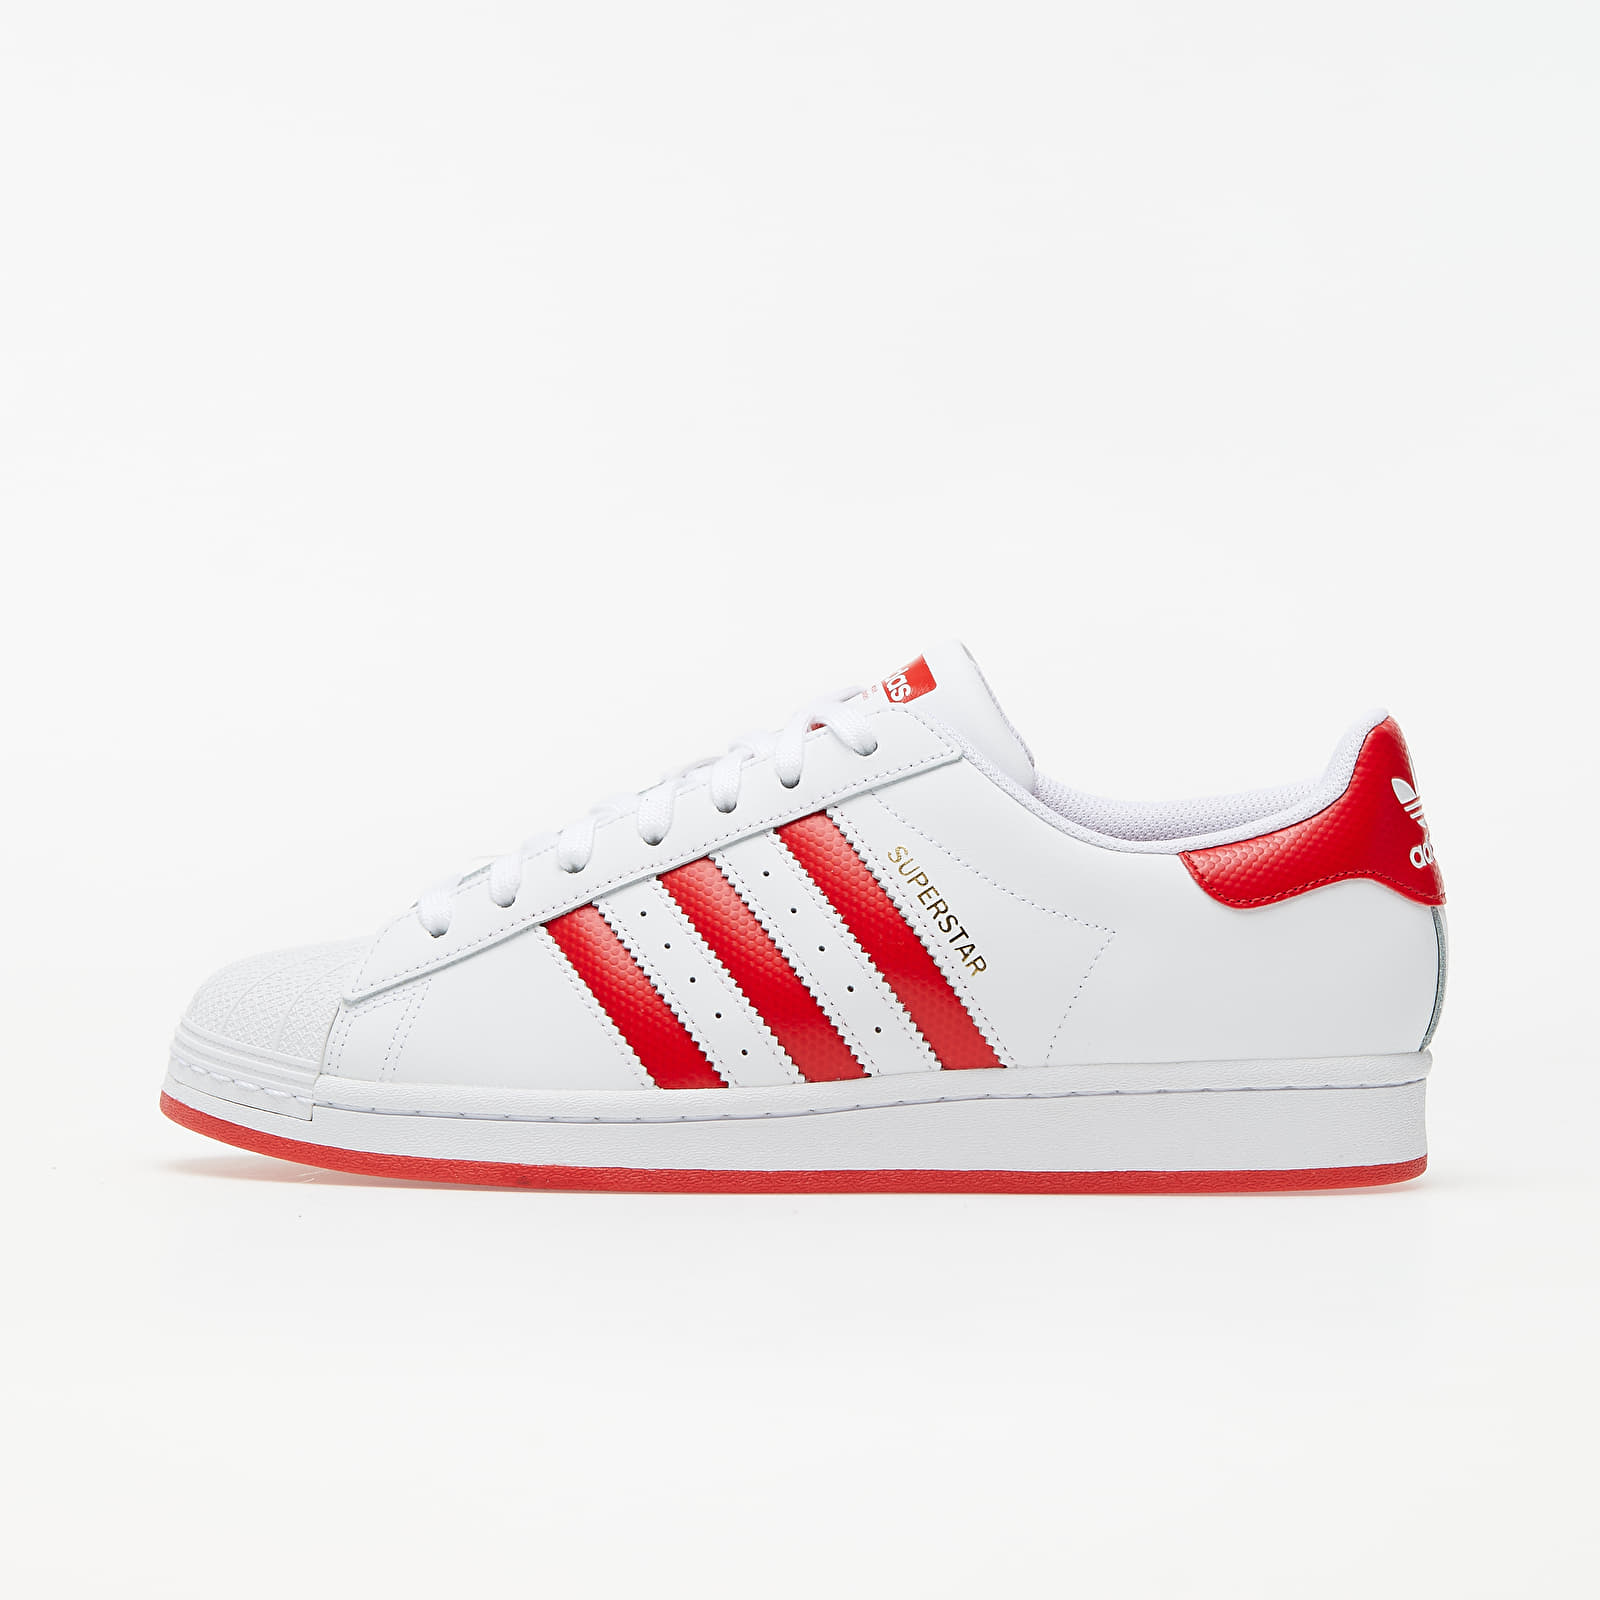 adidas Superstar Ftw White/ Lust Red/ Gold Metalic EUR 43 1/3